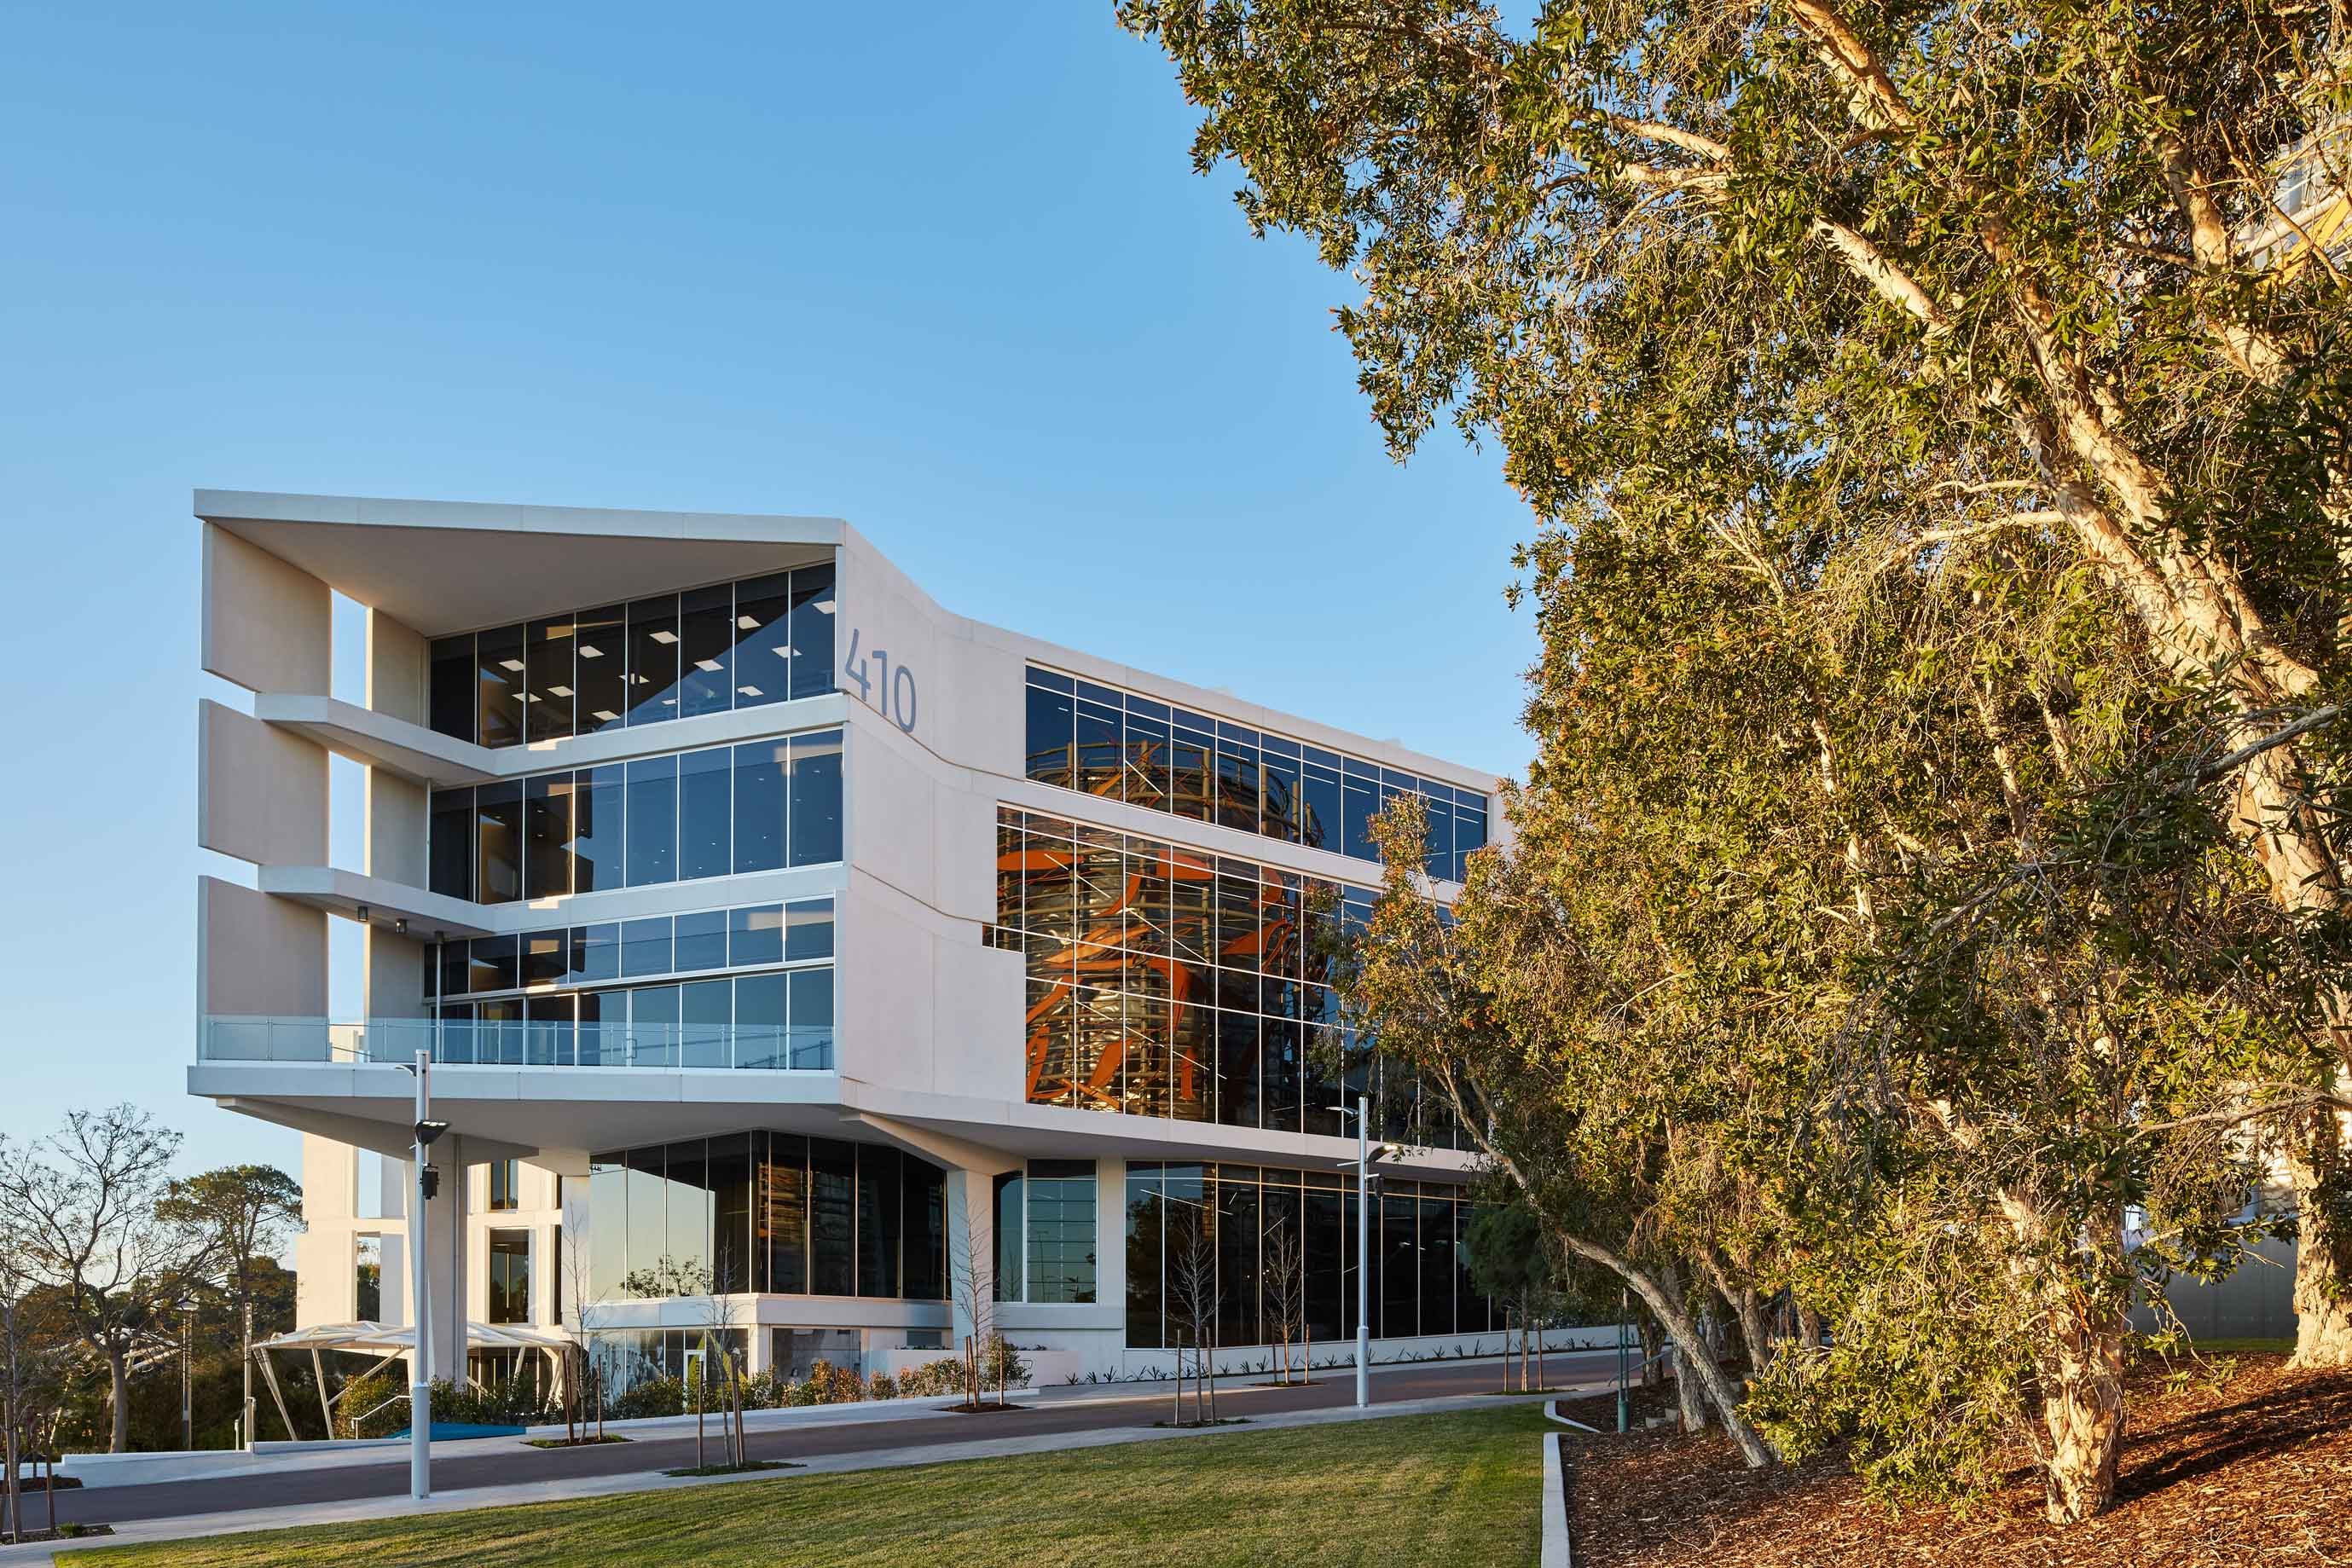 Curtin University Medical School : Image 9